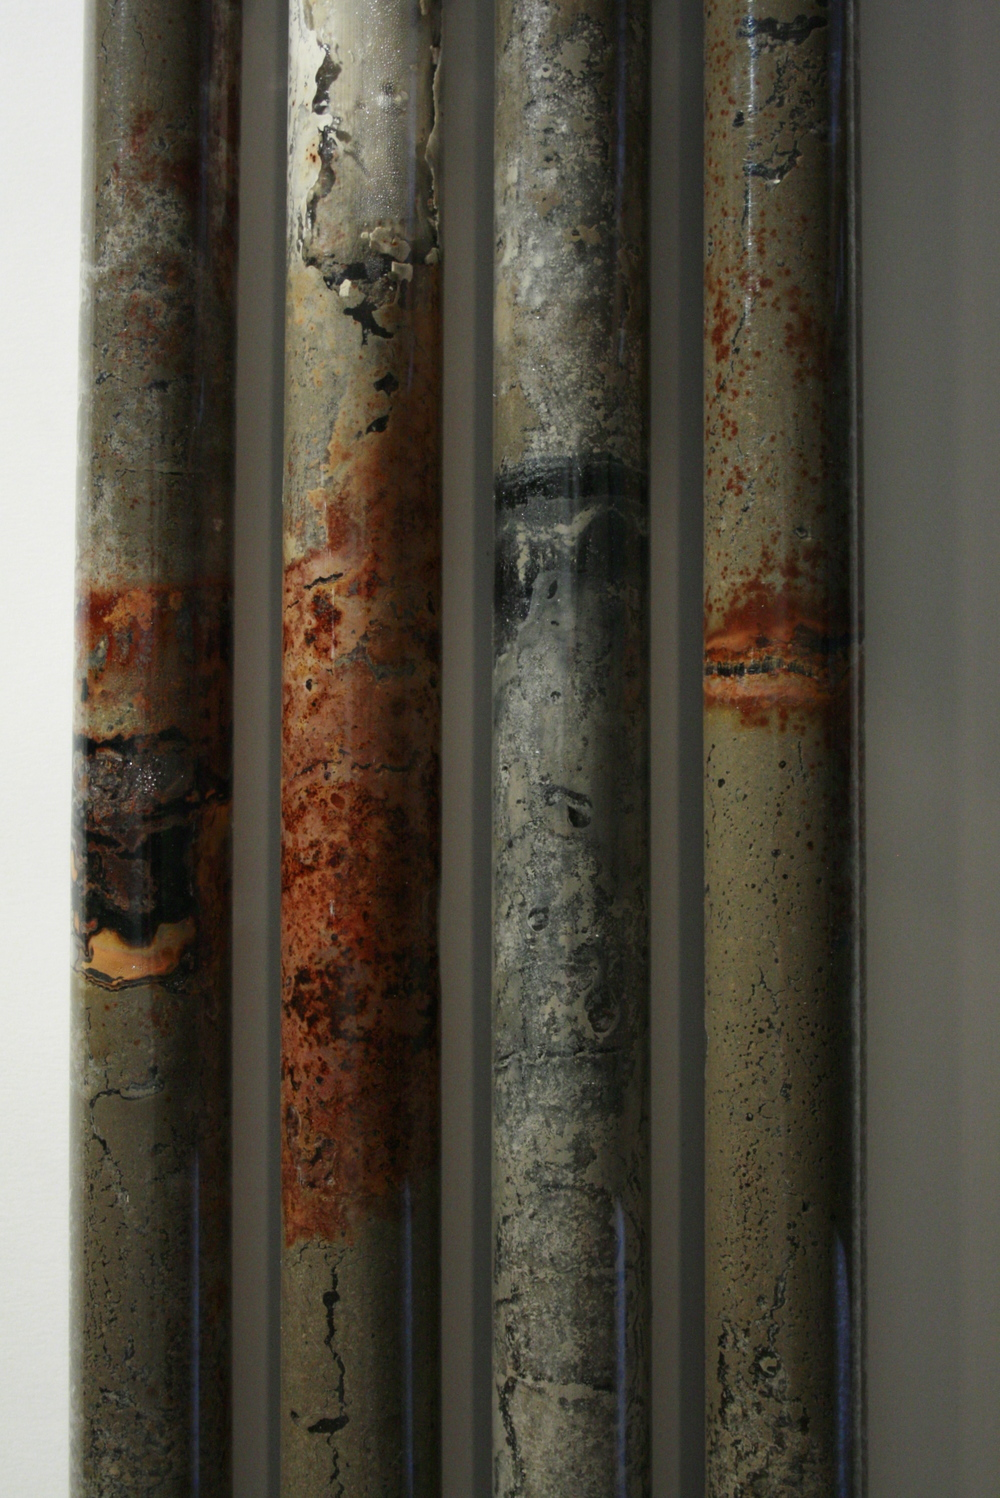 core samples of the anthropocene